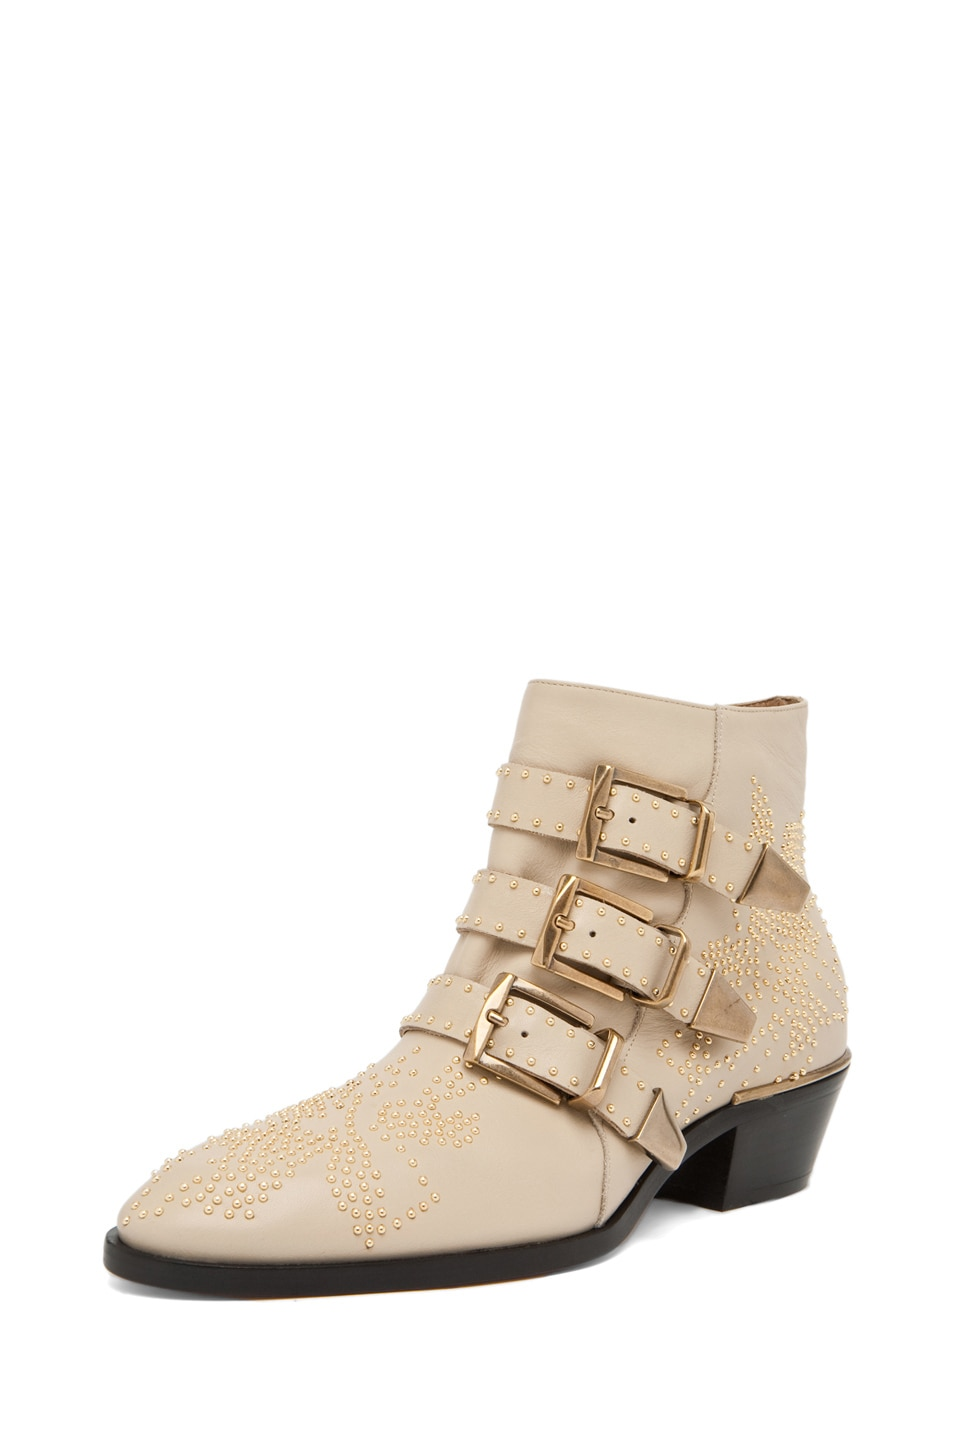 Image 2 of Chloe Susanna Leather Studded Bootie in Cream